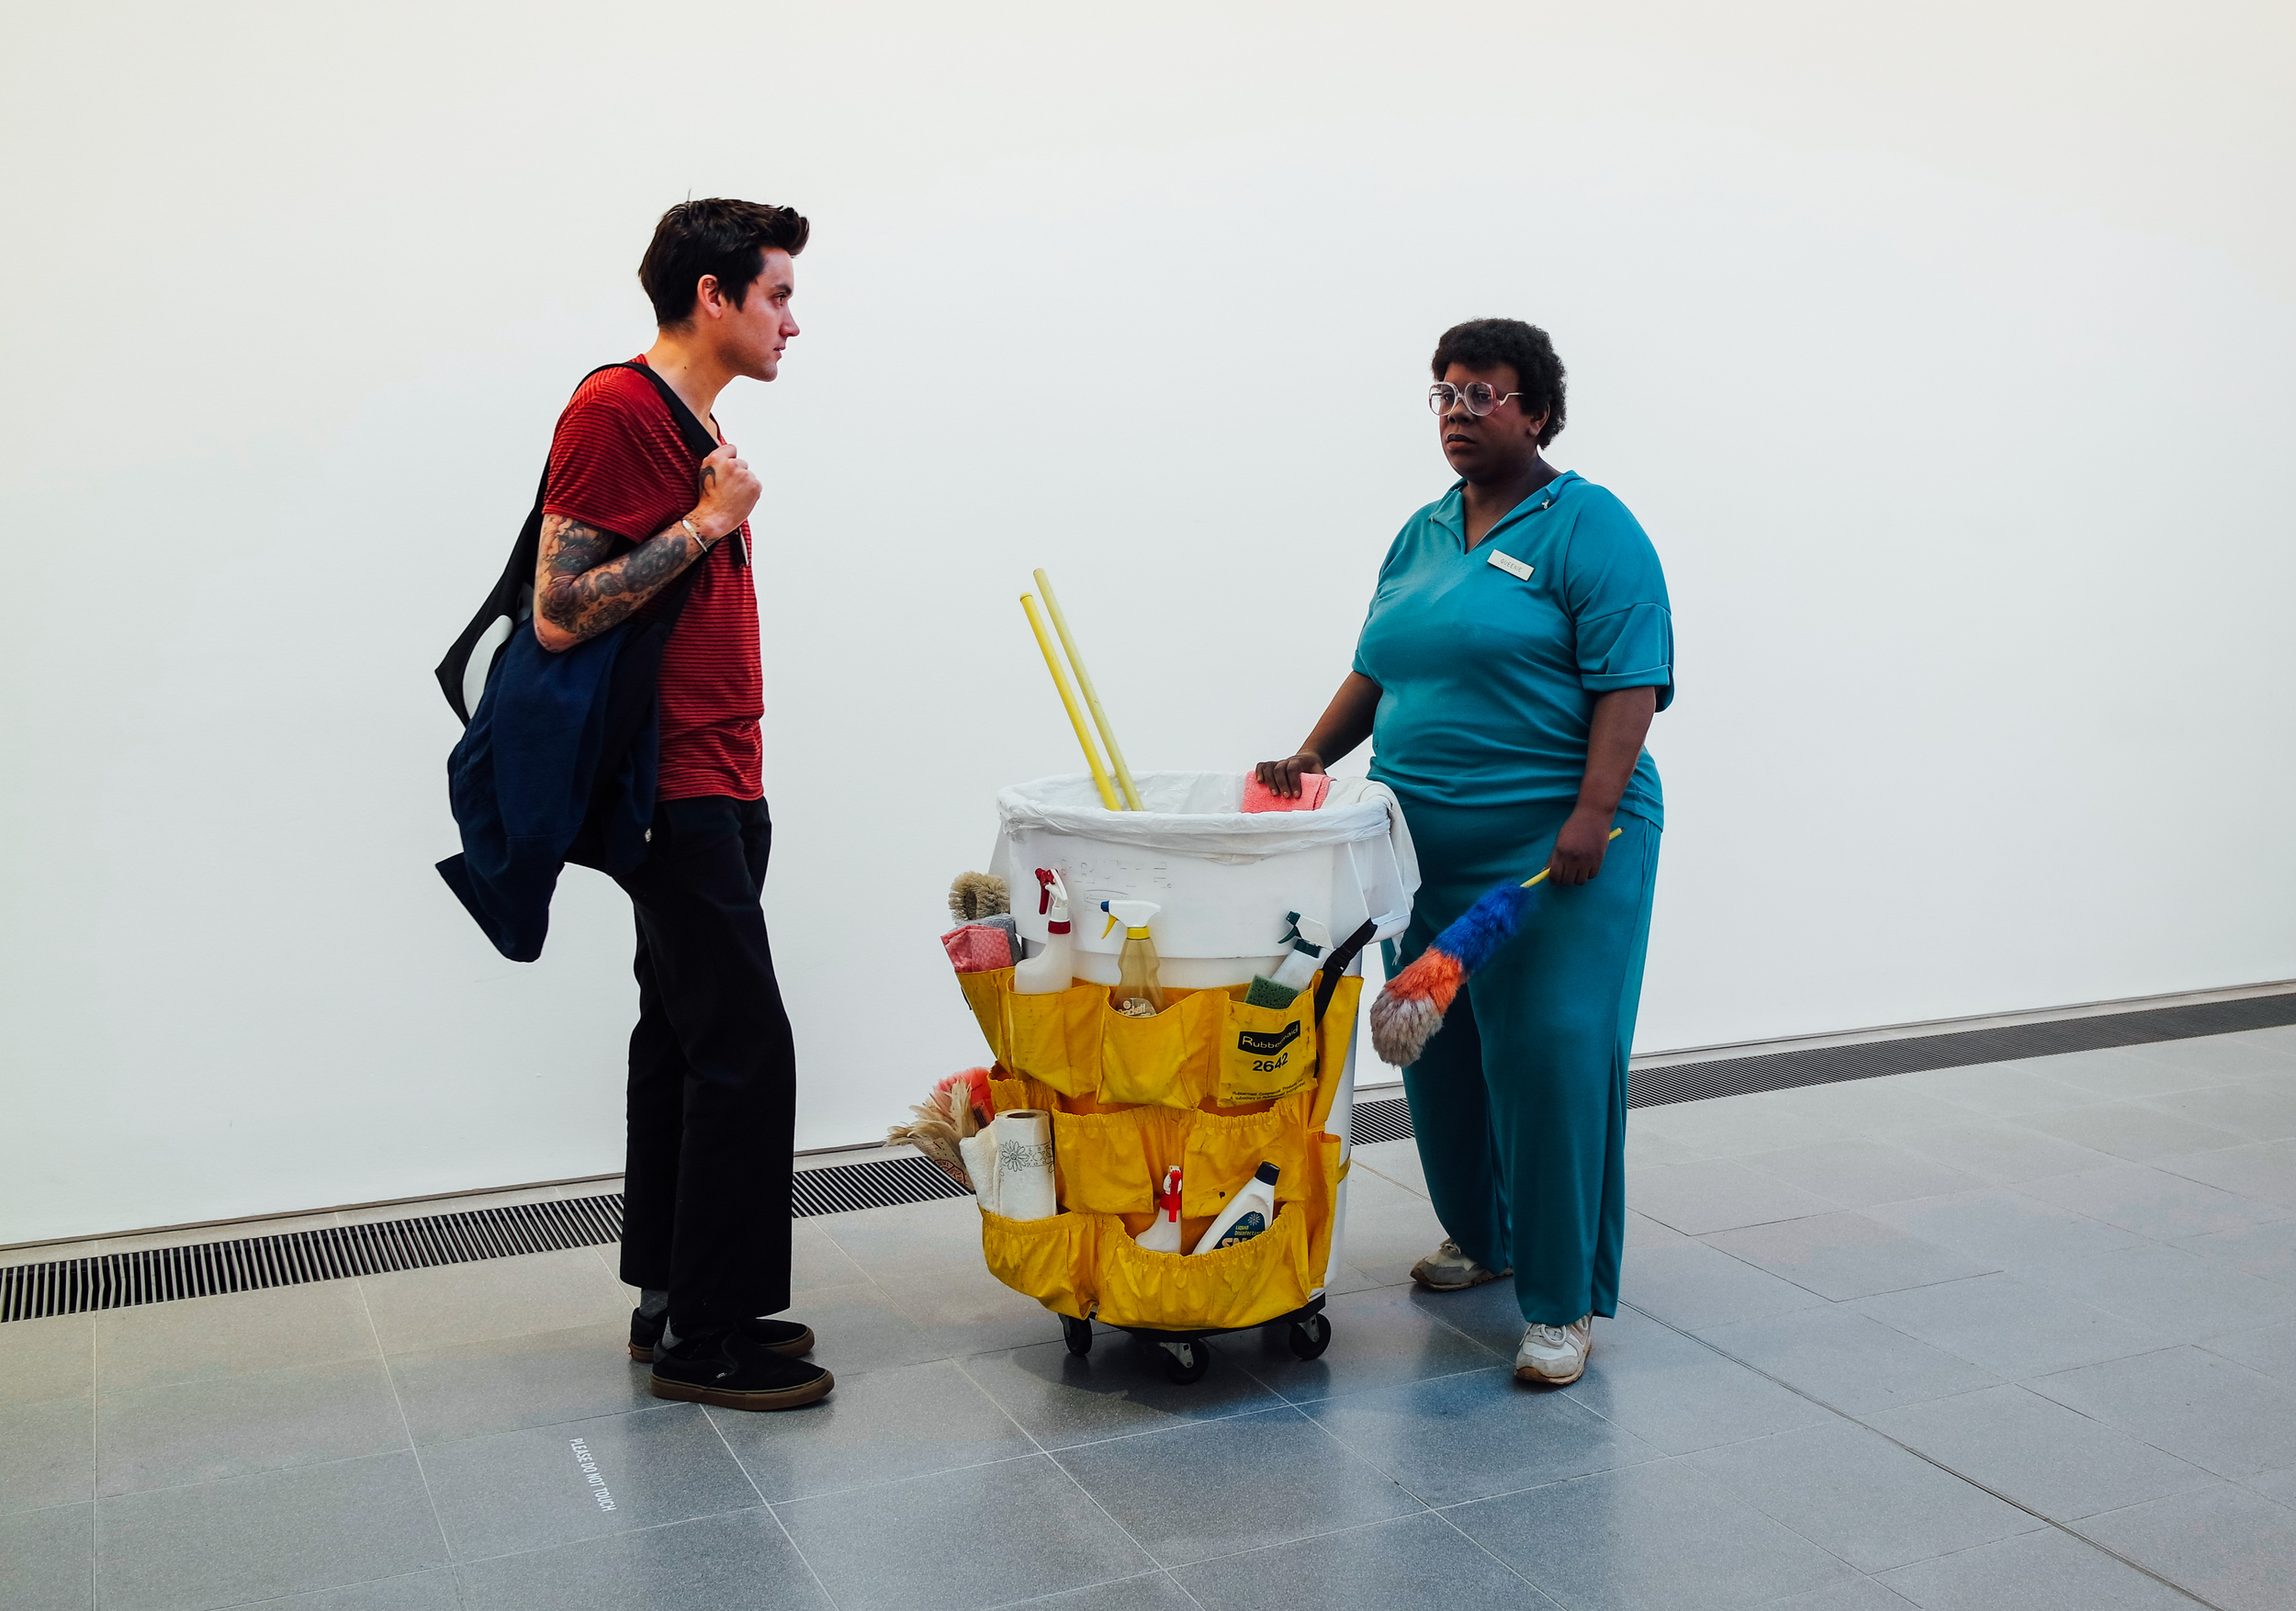 Dean and Queen - Duane Hanson show at The Serpentine